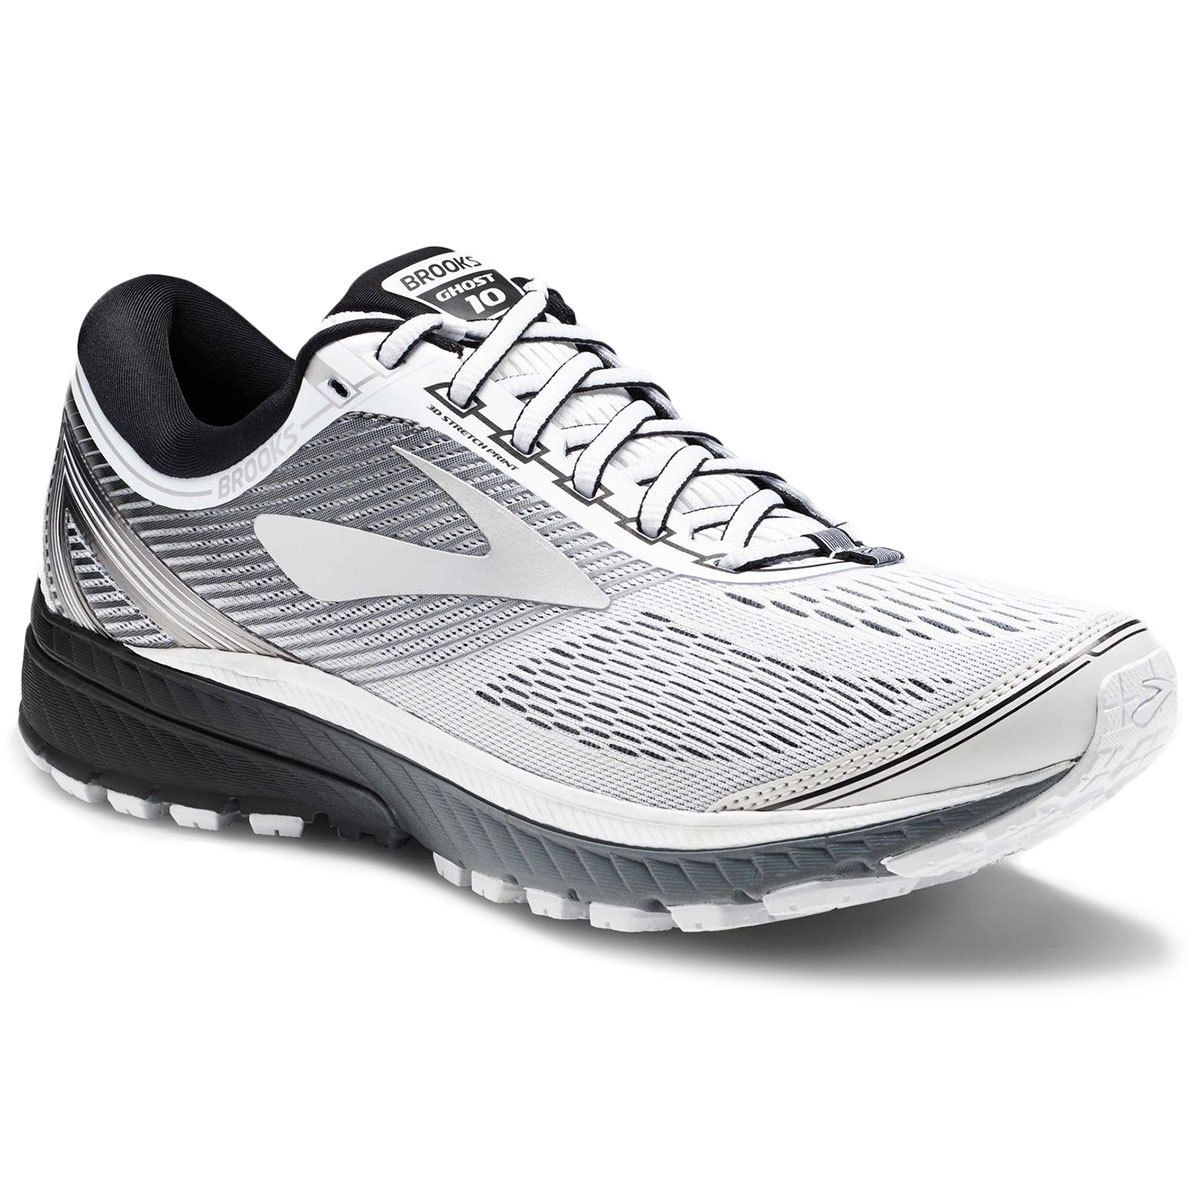 Running shoes, Brooks running shoes